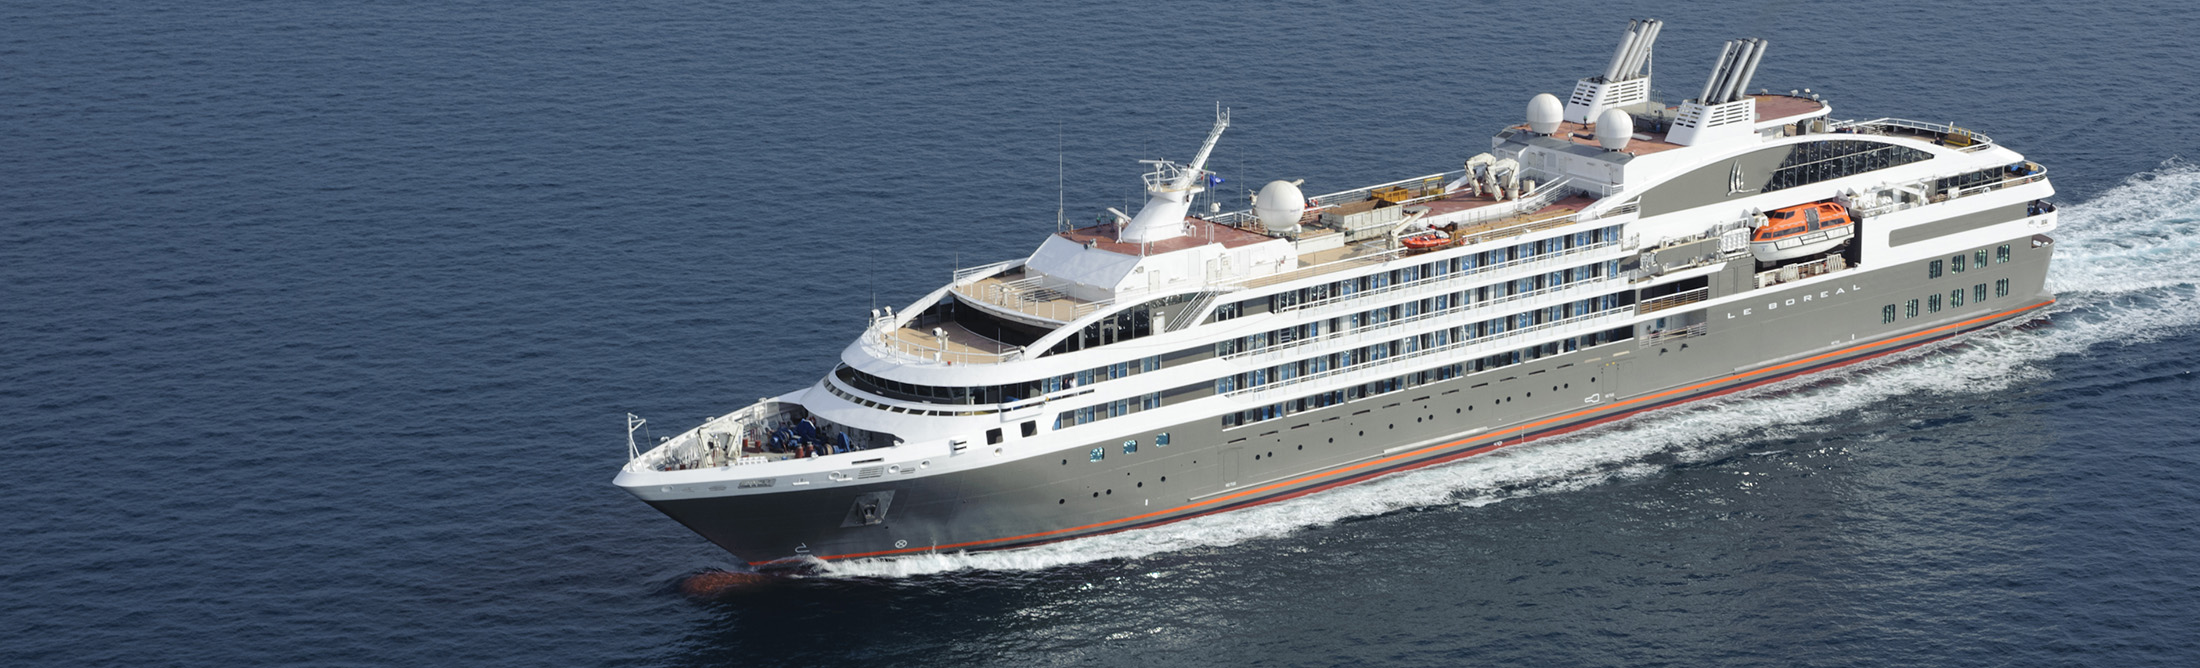 Renting Giant Cruise Ships Is The New Wave In Private Yachting - Buying a cruise ship